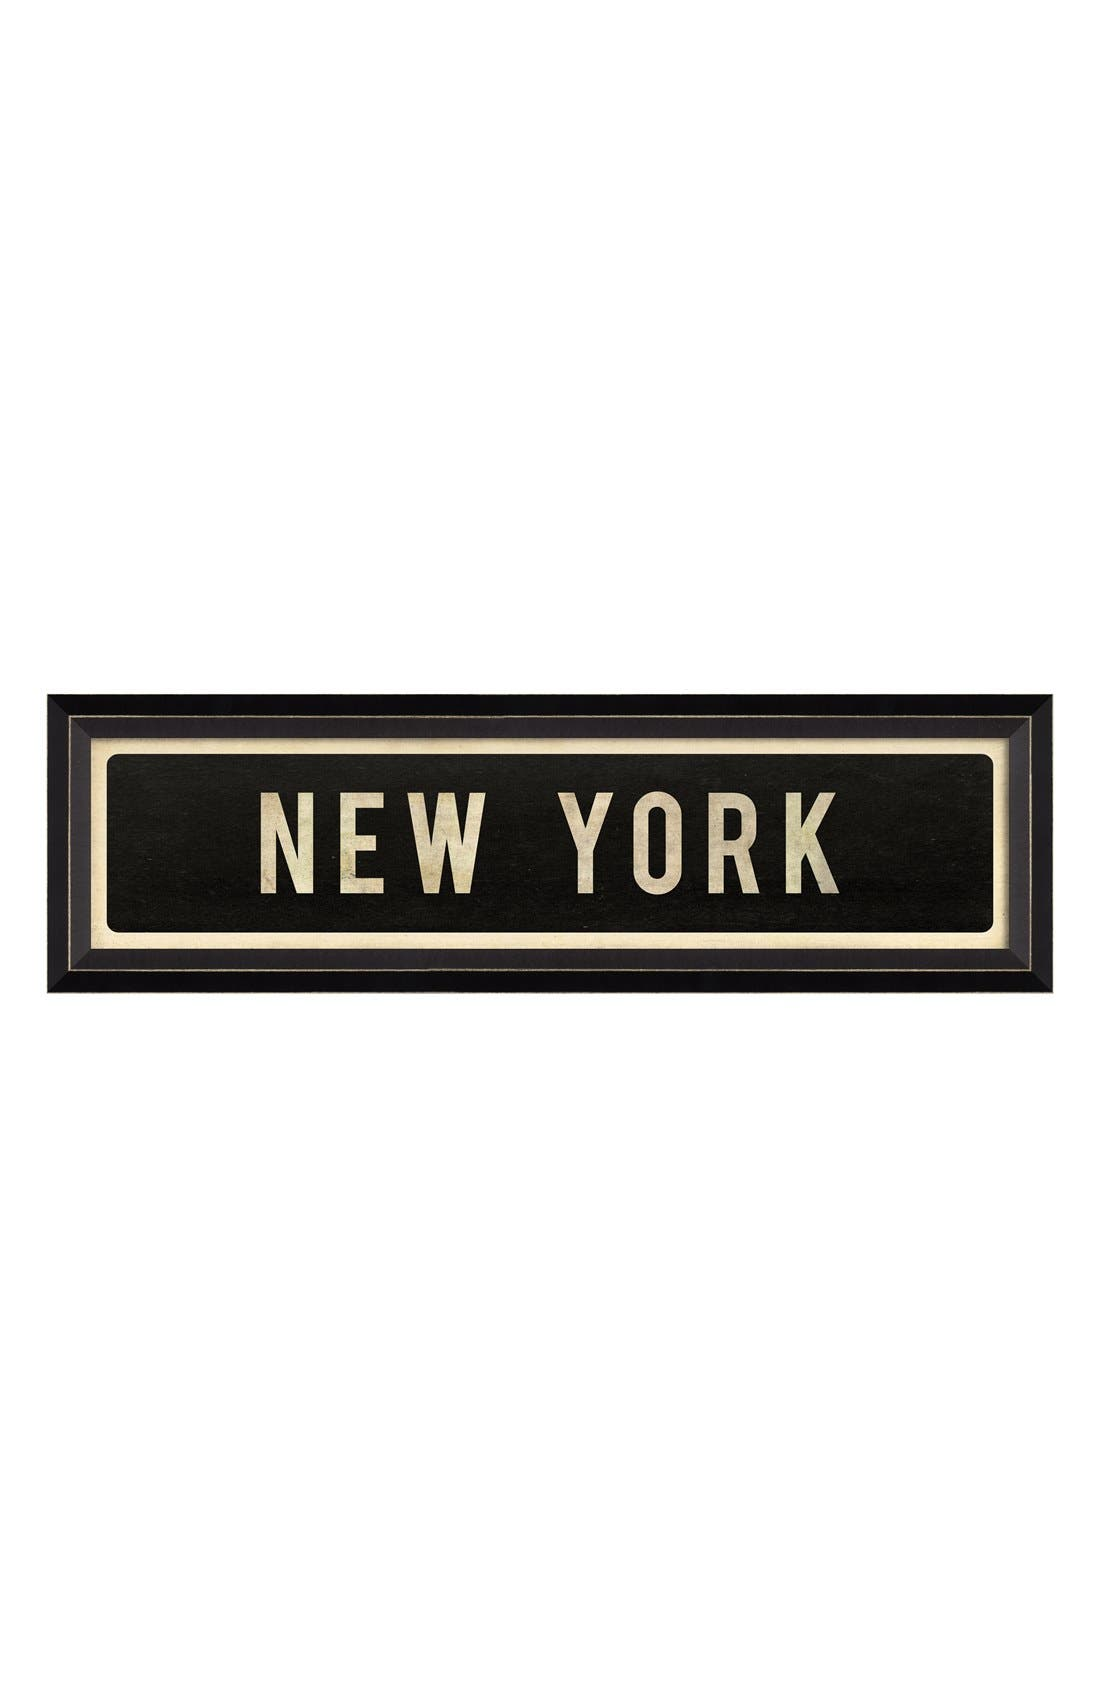 Alternate Image 1 Selected - Spicher and Company 'New York' Vintage Look Street Sign Artwork